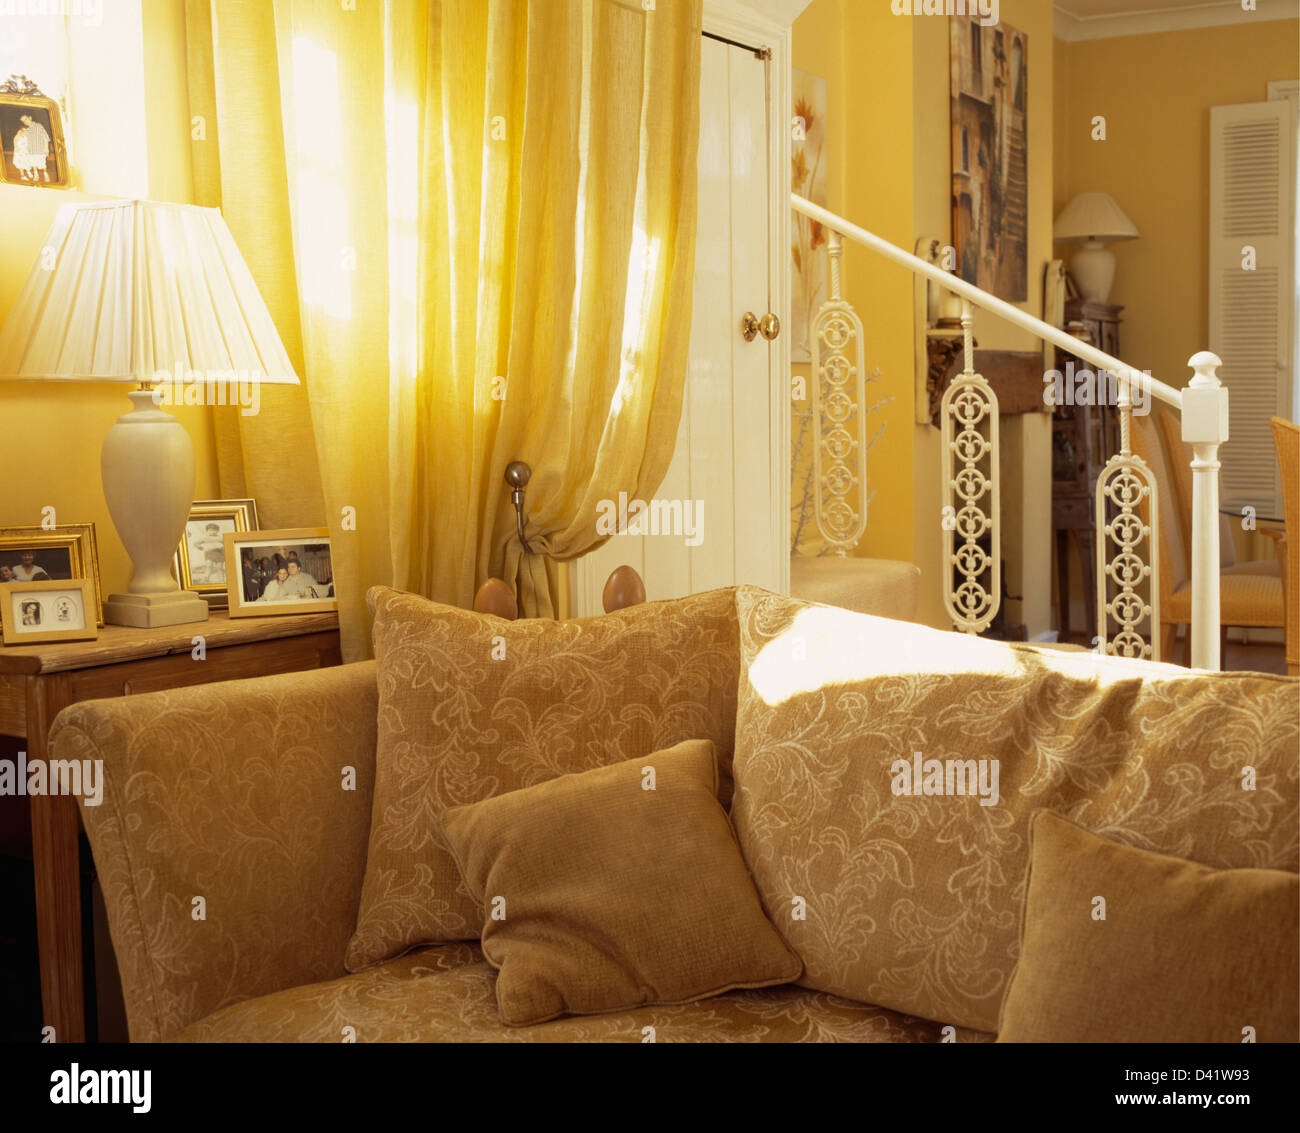 Pale Yellow Door Curtain Beside Beige Patterned Sofa With Matching Cushions In Front Of Painted Banister Living Room